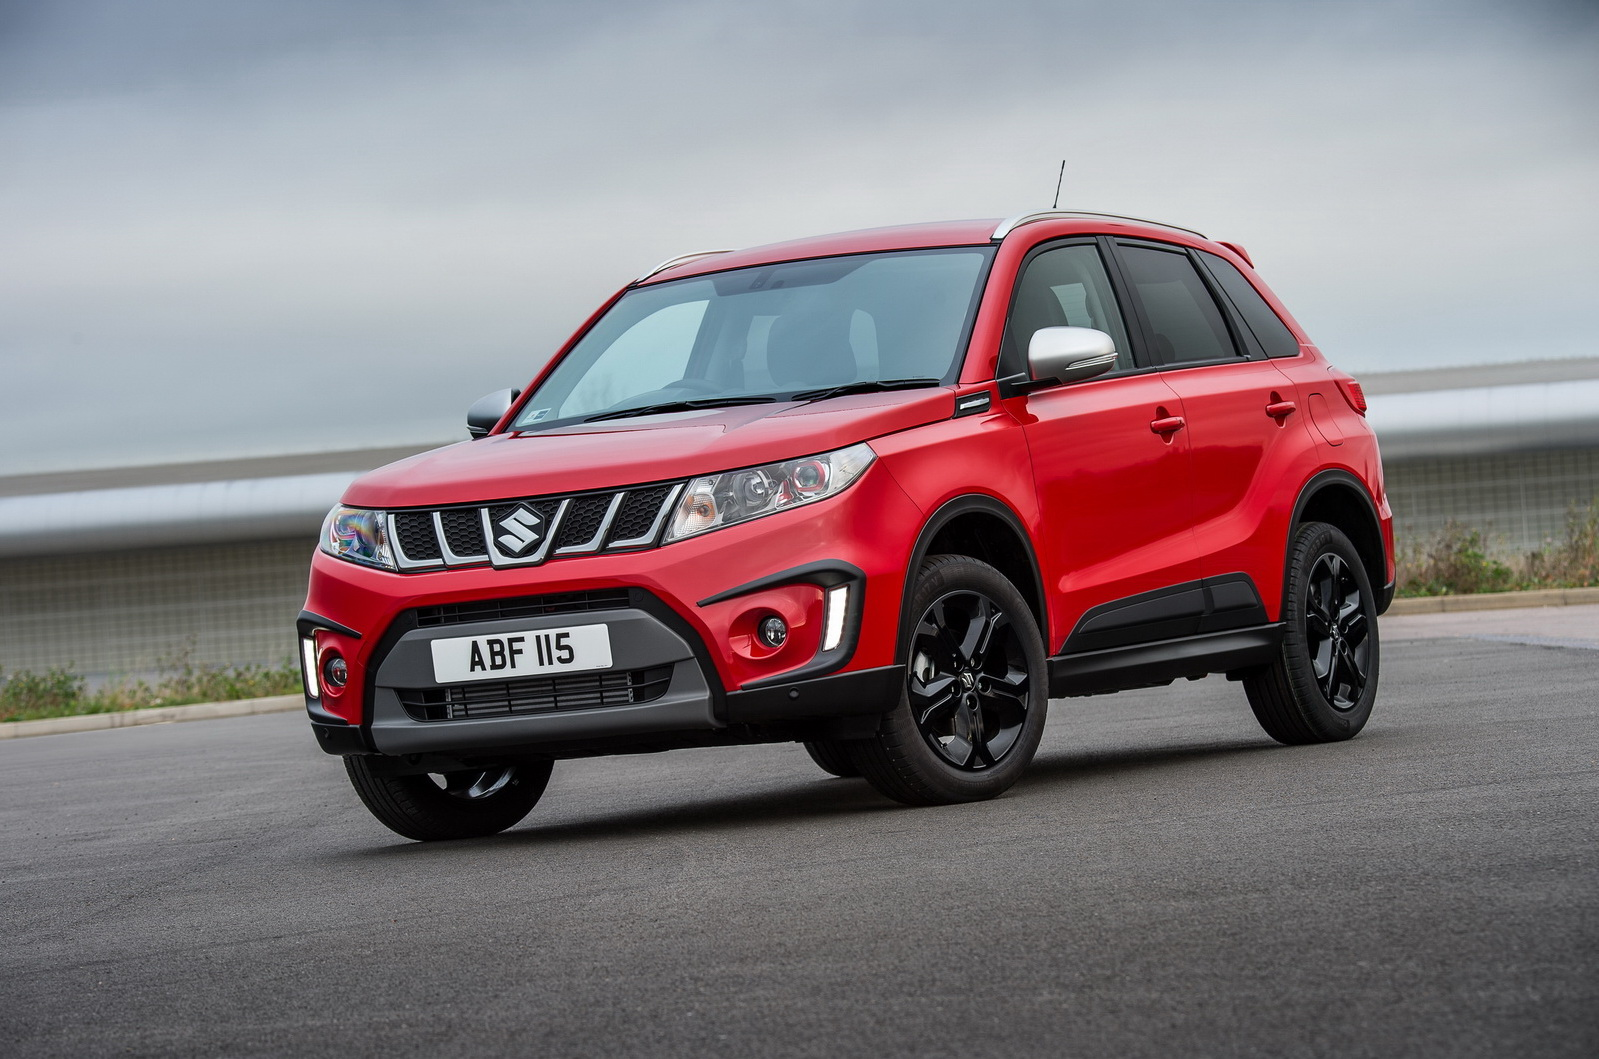 land rover car with New Suzuki Vitara S Debuts With Turbo on Review in addition Prestige Imports Delivers Beautiful Pagani Huayra Bc in addition 2018 Dacia Duster in addition Ford Escort Rs Cosworth Buying Guide besides New Suzuki Vitara S Debuts With Turbo.